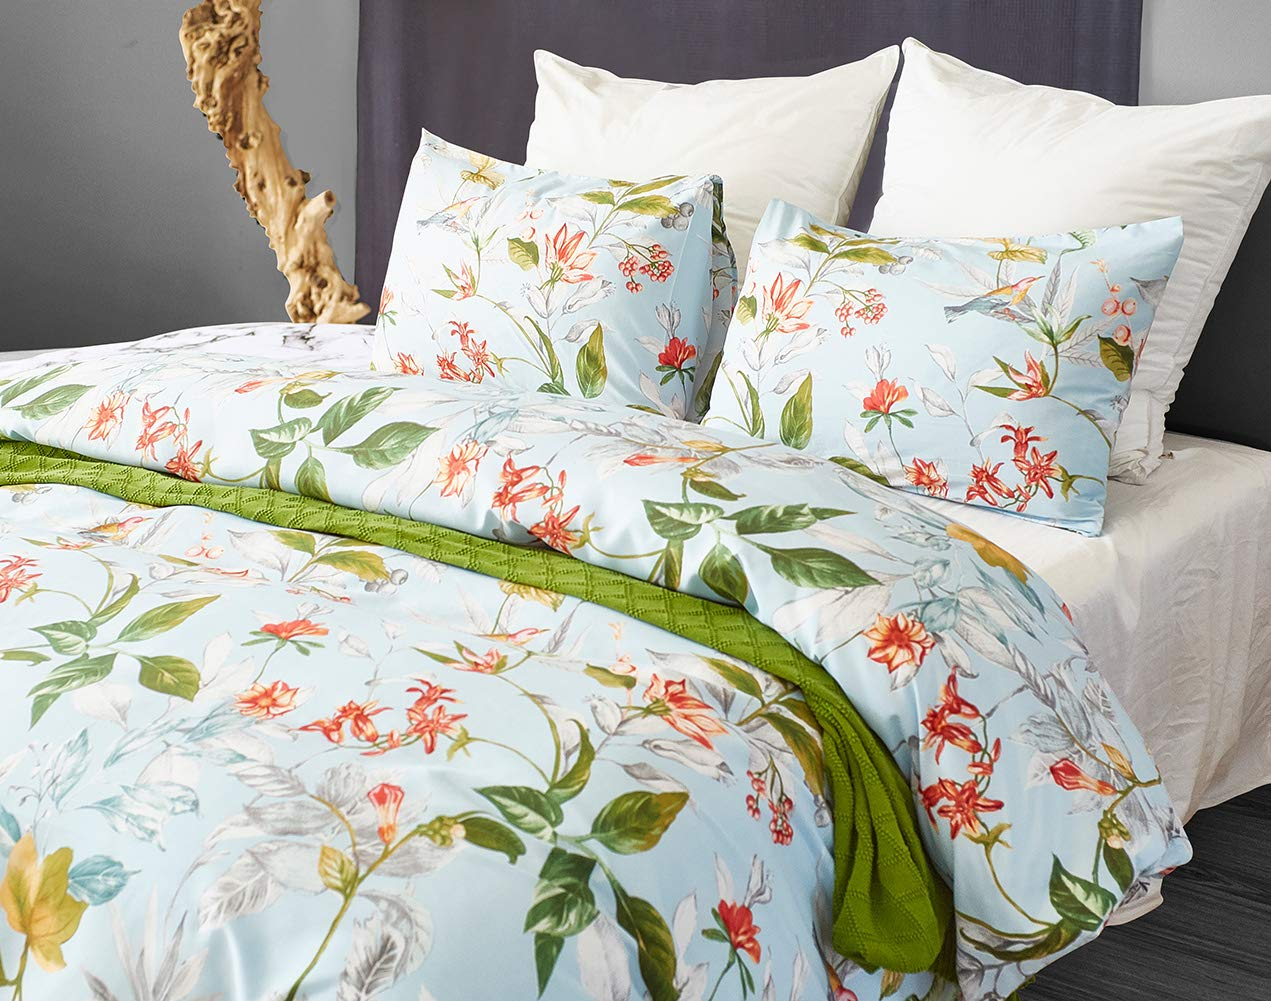 Chanyuan Boho Botanical Floral Plant Duvet Cover Set King Size Country Rustic Light Blue Green Leaves Flowers Printed Microfiber Bedding Duvet Comforter Cover with Zipper Closure 3 Pcs